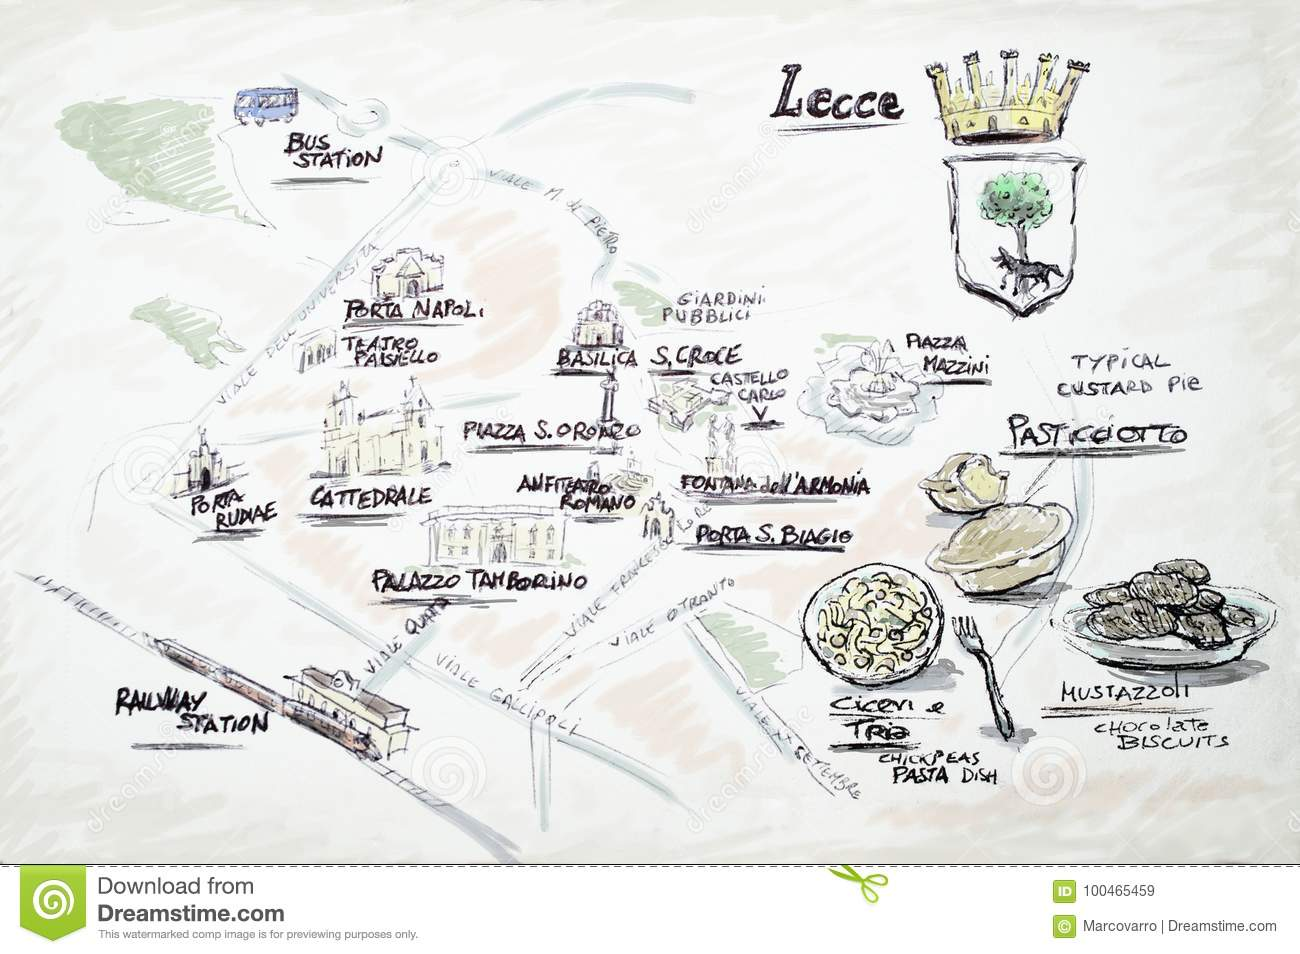 Lecce doodle map stock illustration. Illustration of coats ...